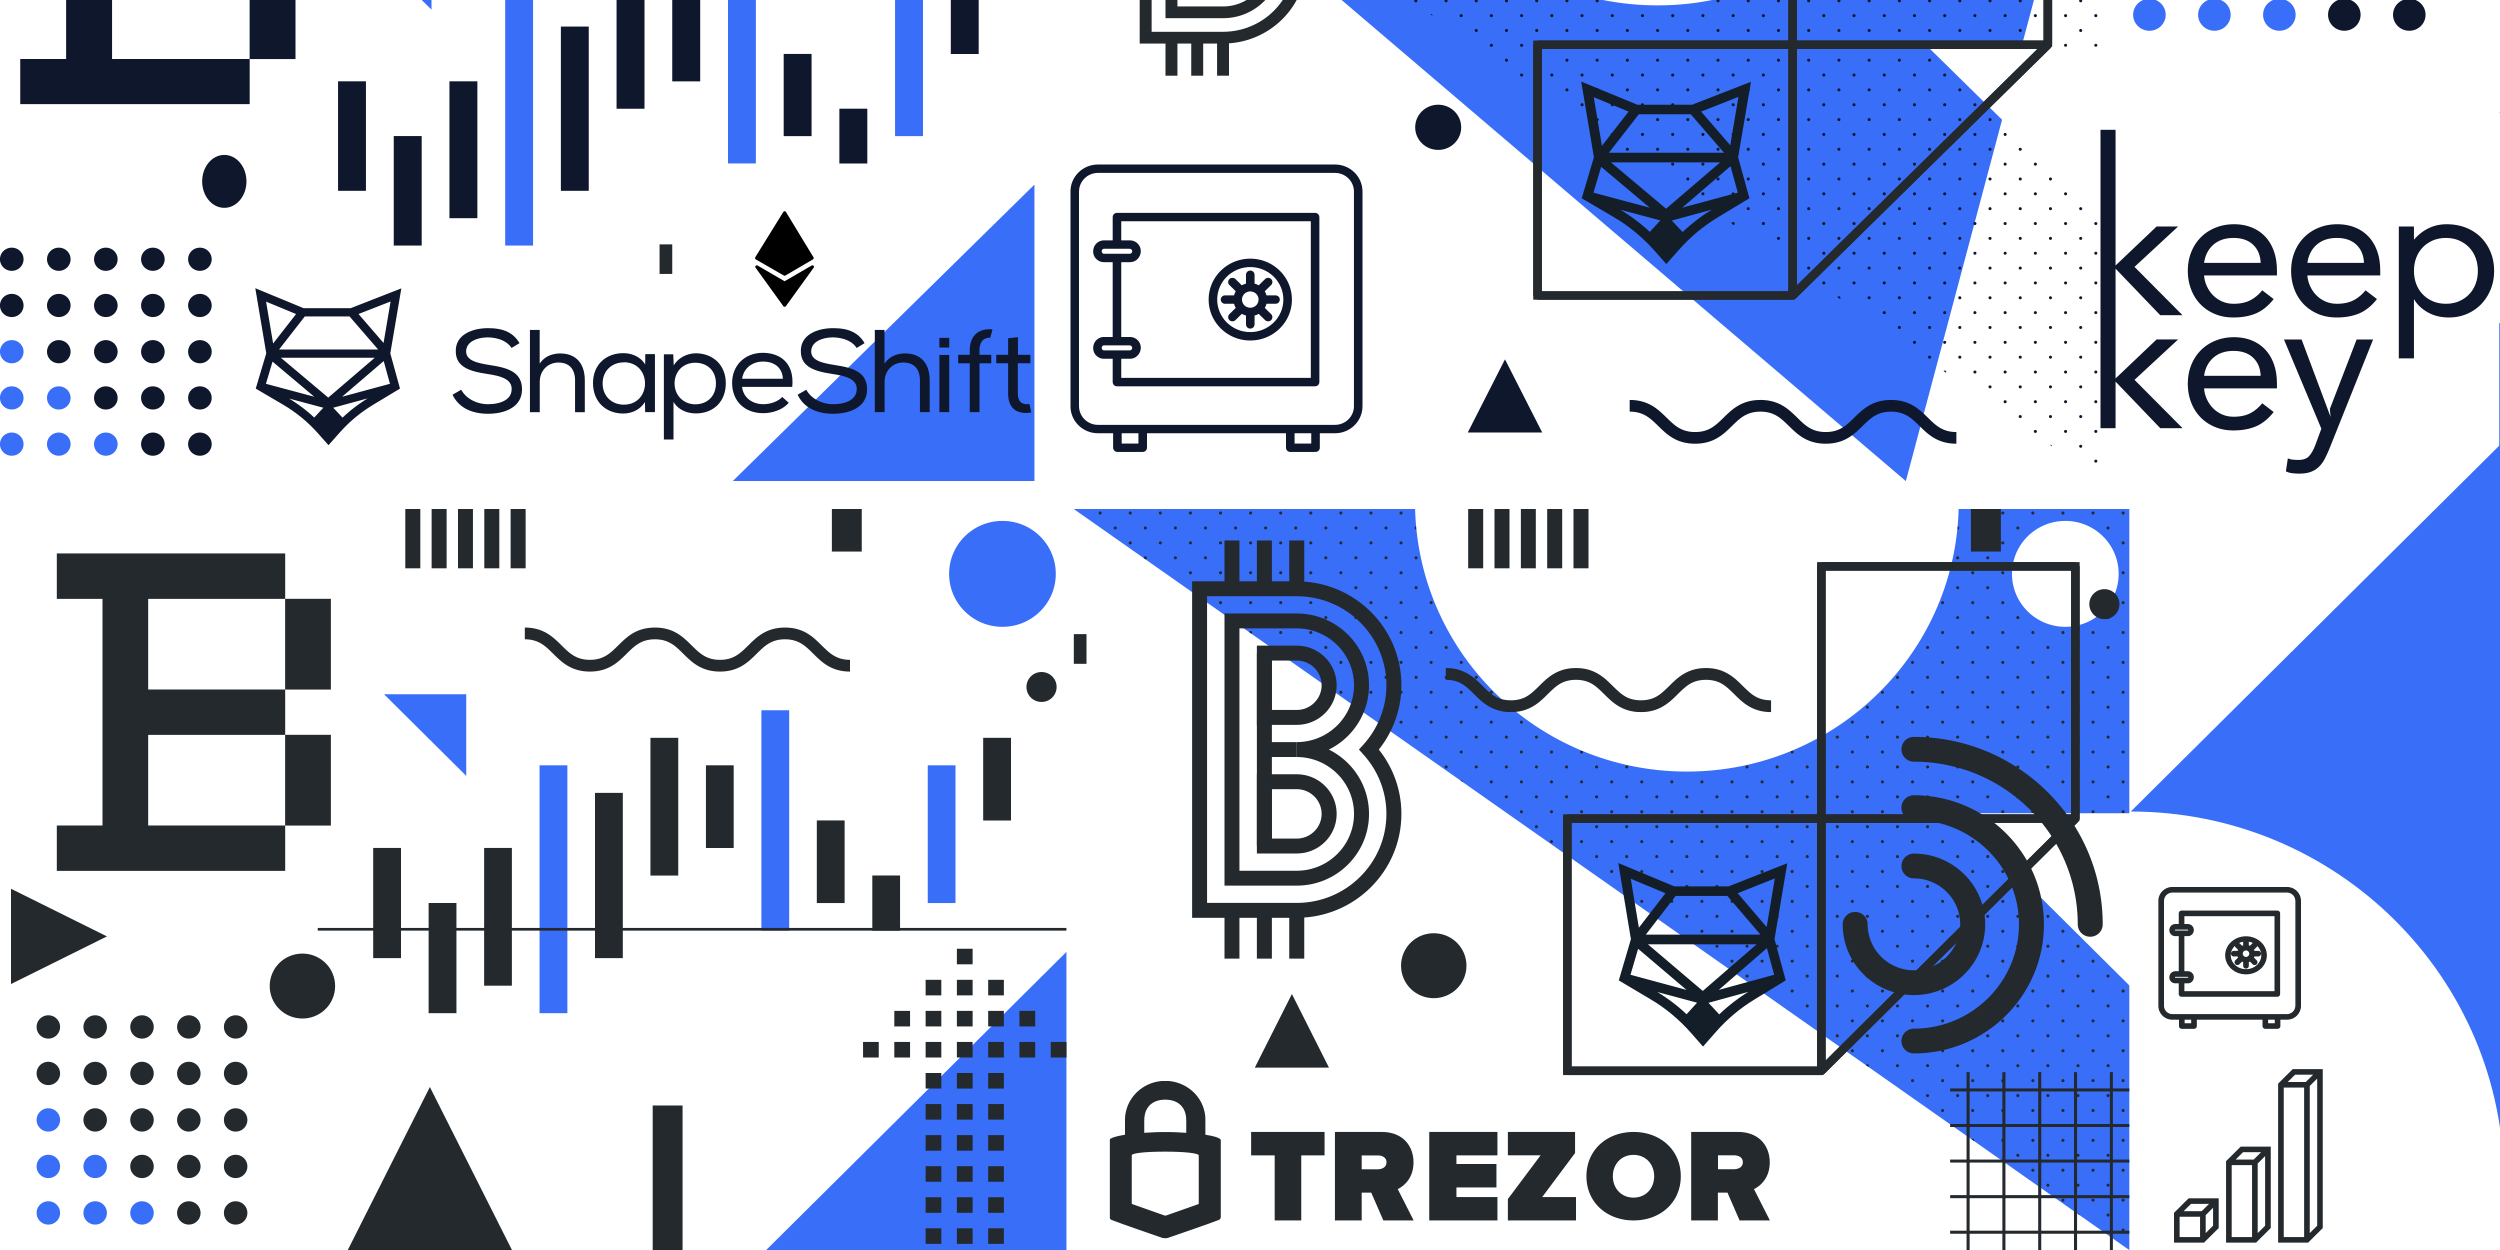 The new ShapeShift was built around the idea of evolving the hardware wallet experience—Compatible with KeepKey & Trezor.